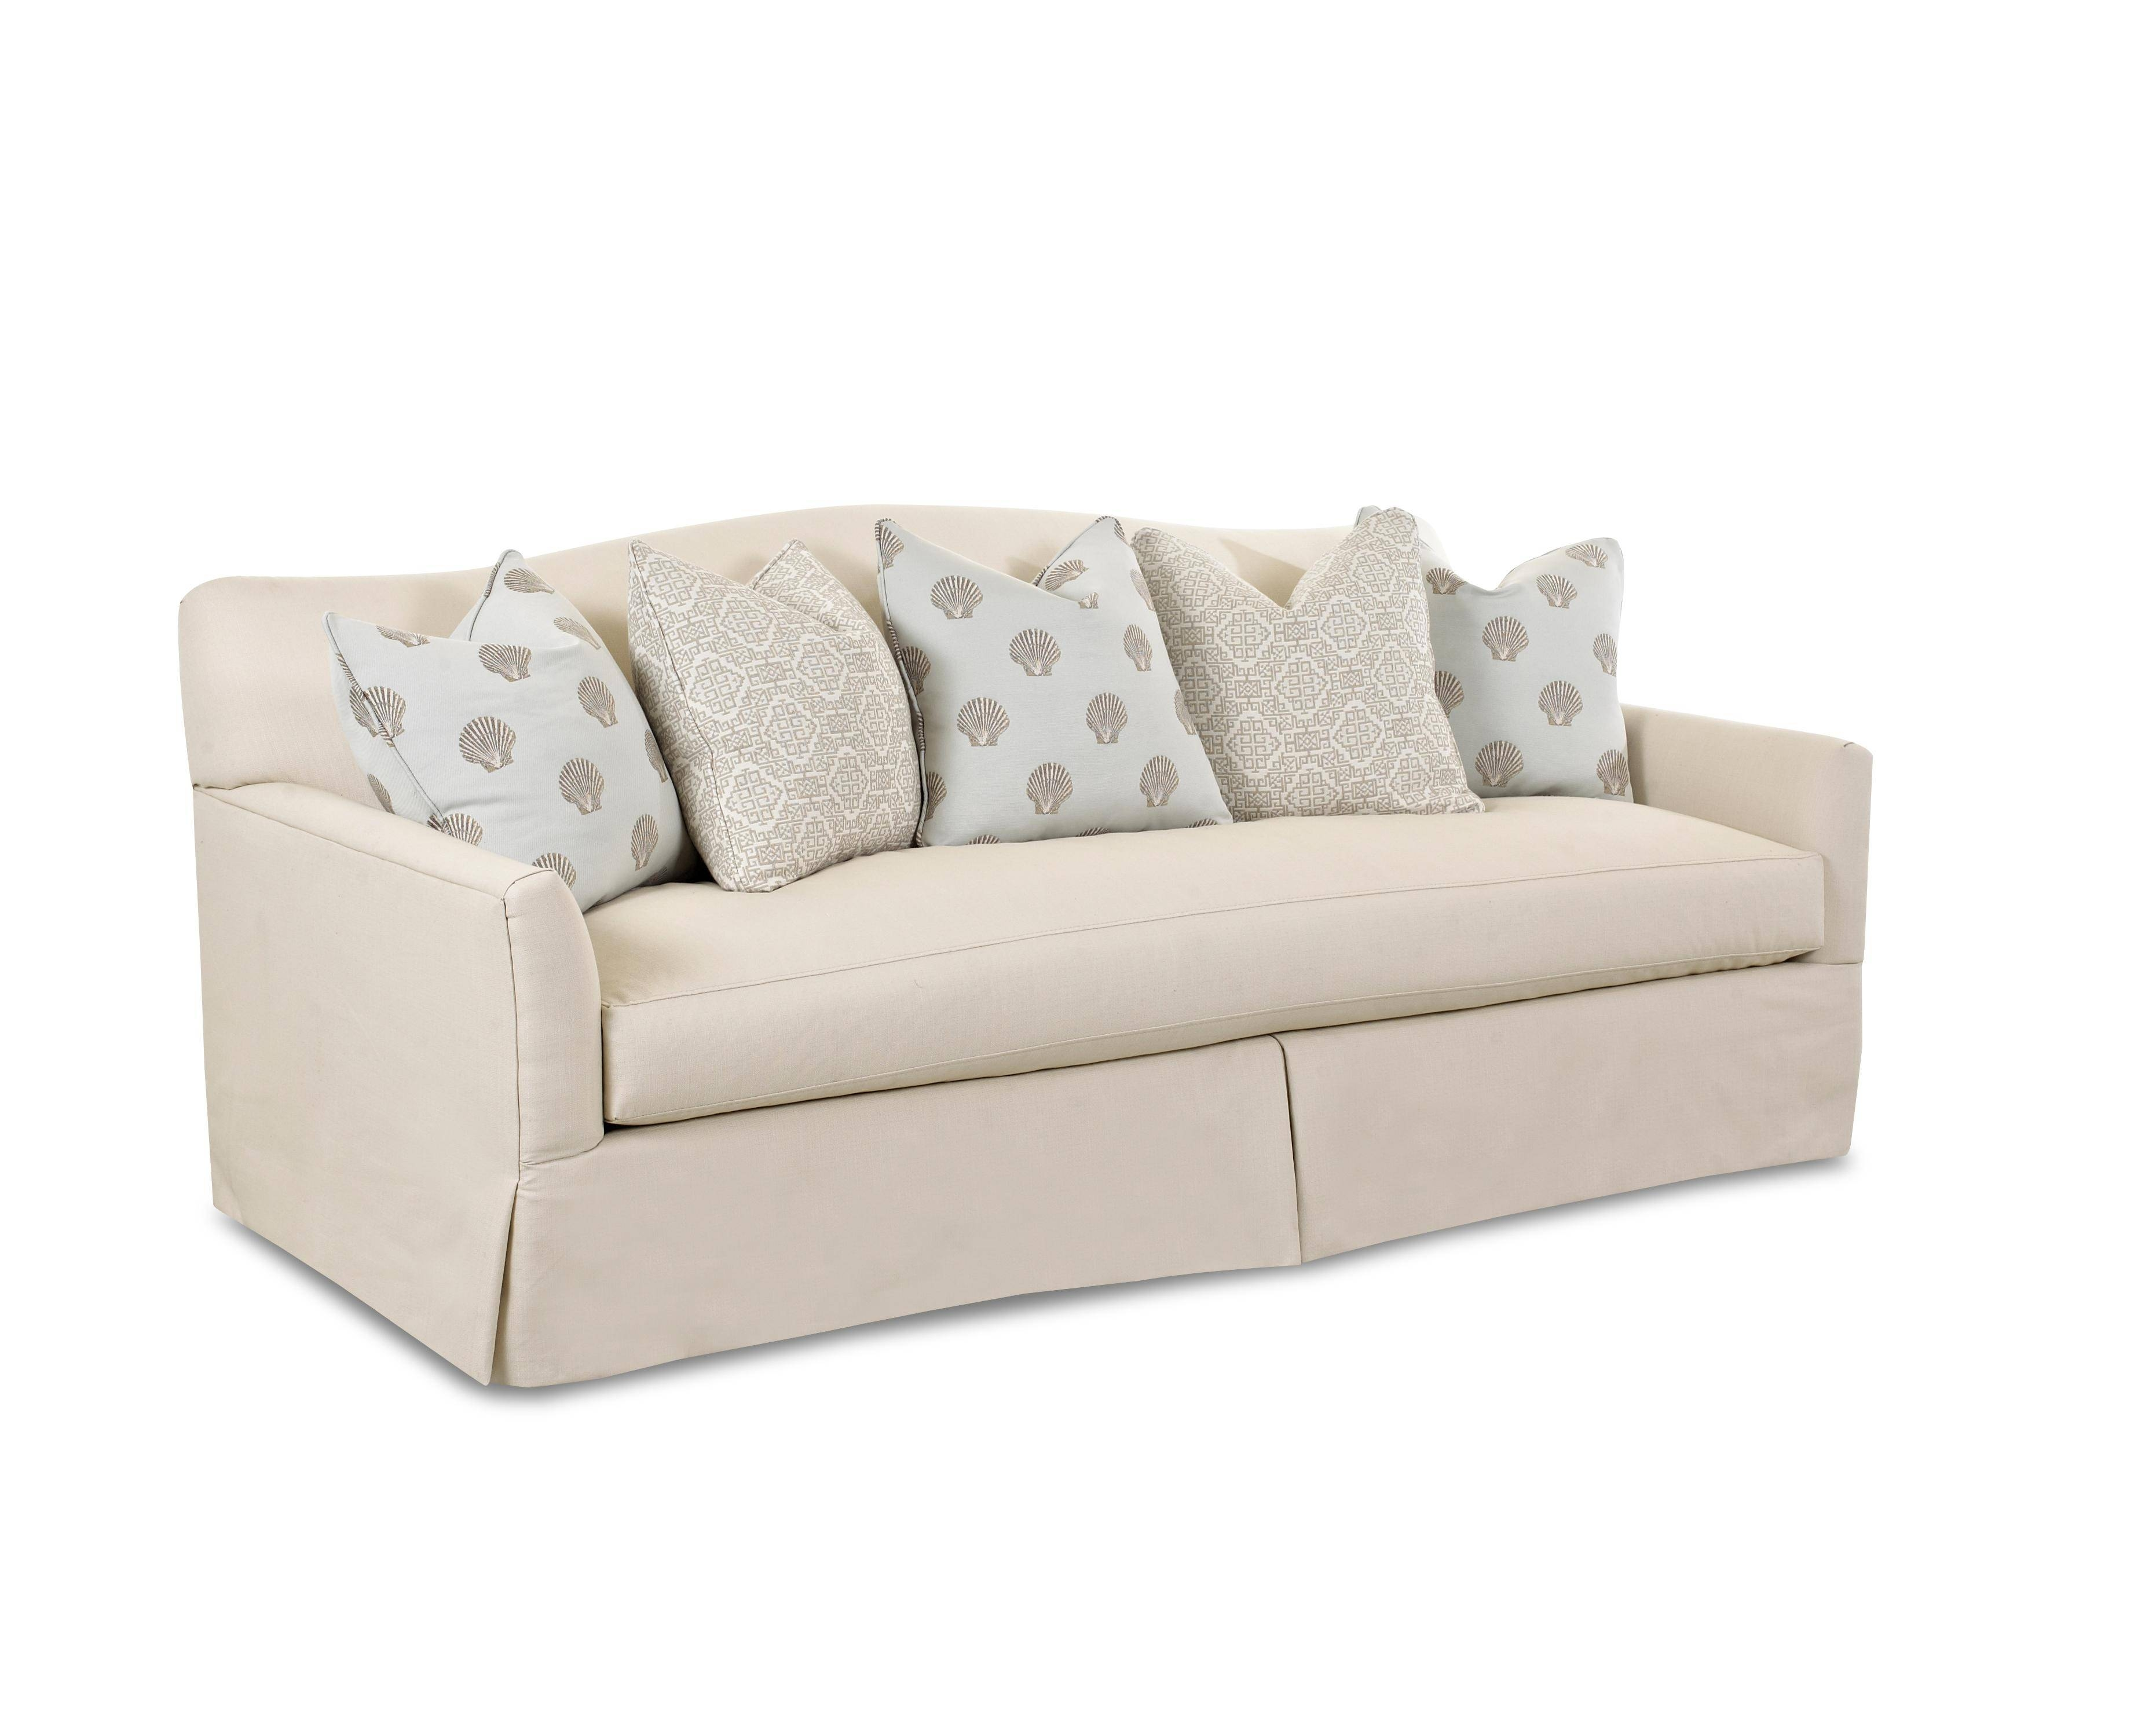 Transitional Stationary Sofa With Bench Seat Cushion, Camel Back inside Bench Cushion Sofas (Image 12 of 15)